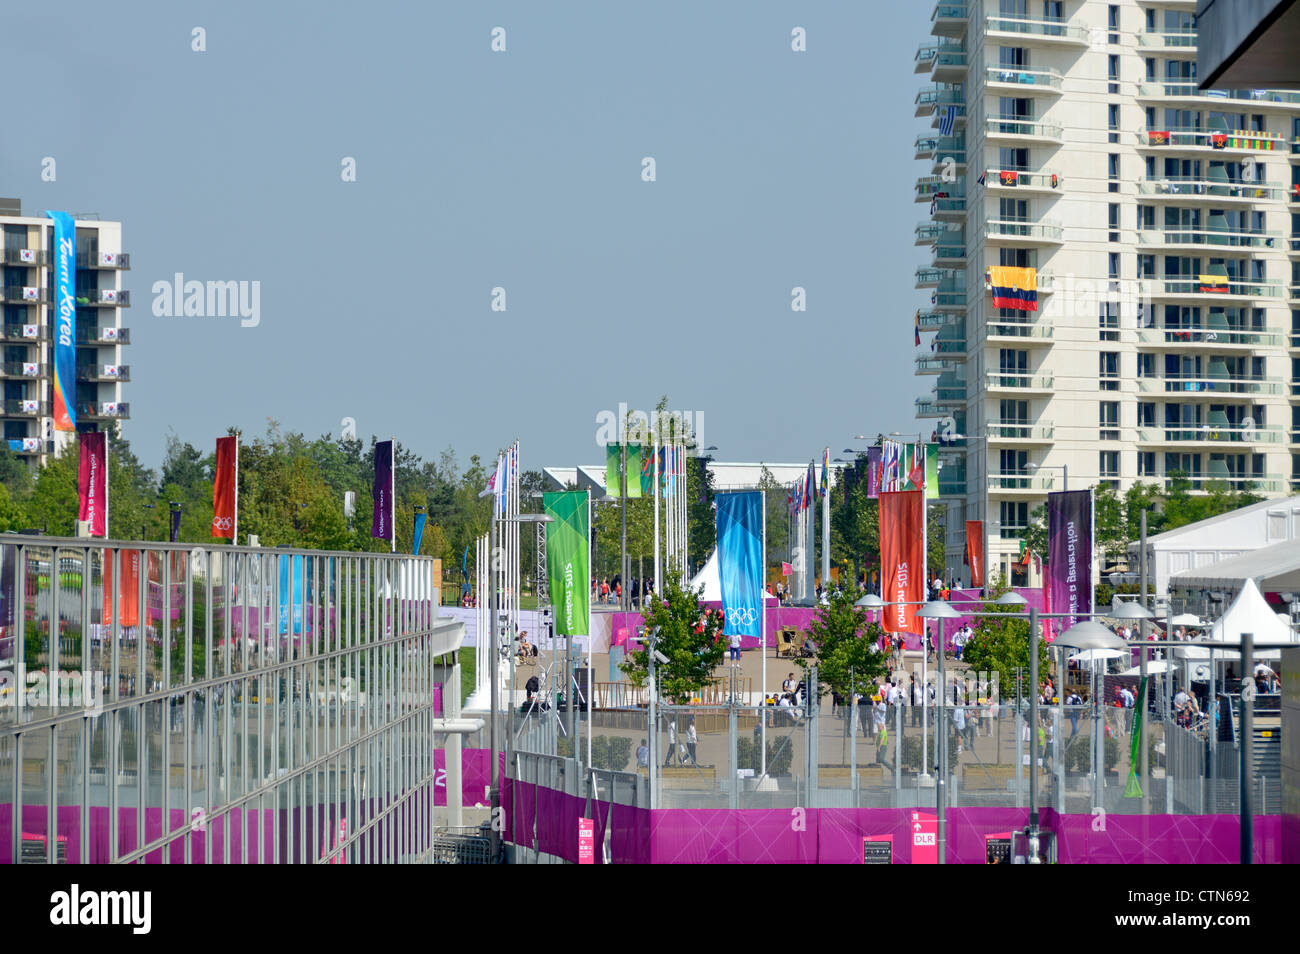 Athletes village and some accomodation blocks seen beyond security fencing at the London 2012 Olympic Park EDITORIAL - Stock Image